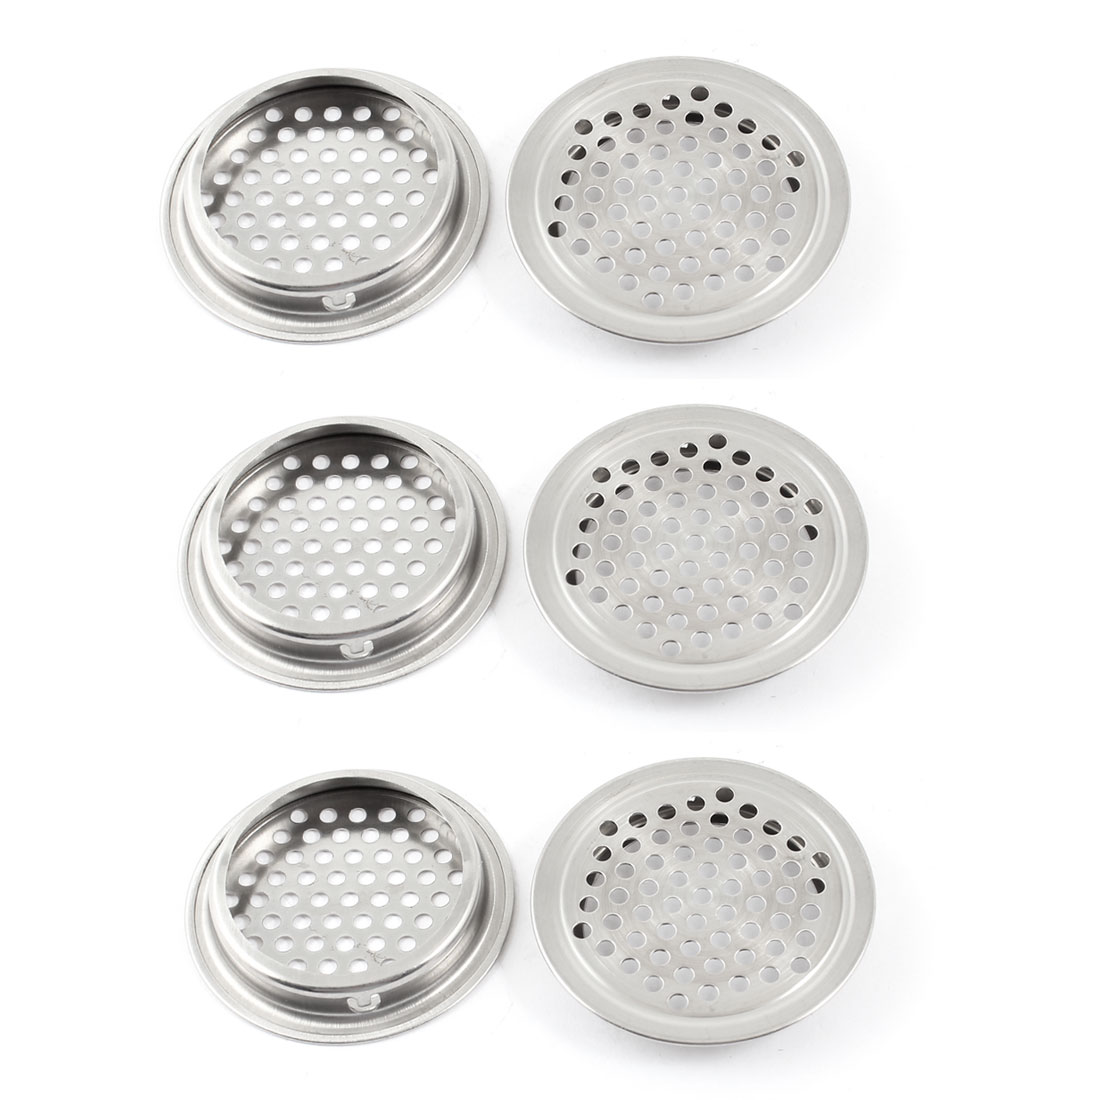 Kitchen Hardware Louver 52mm Bottom Dia Metal Round Design Air Vent 6 Pcs